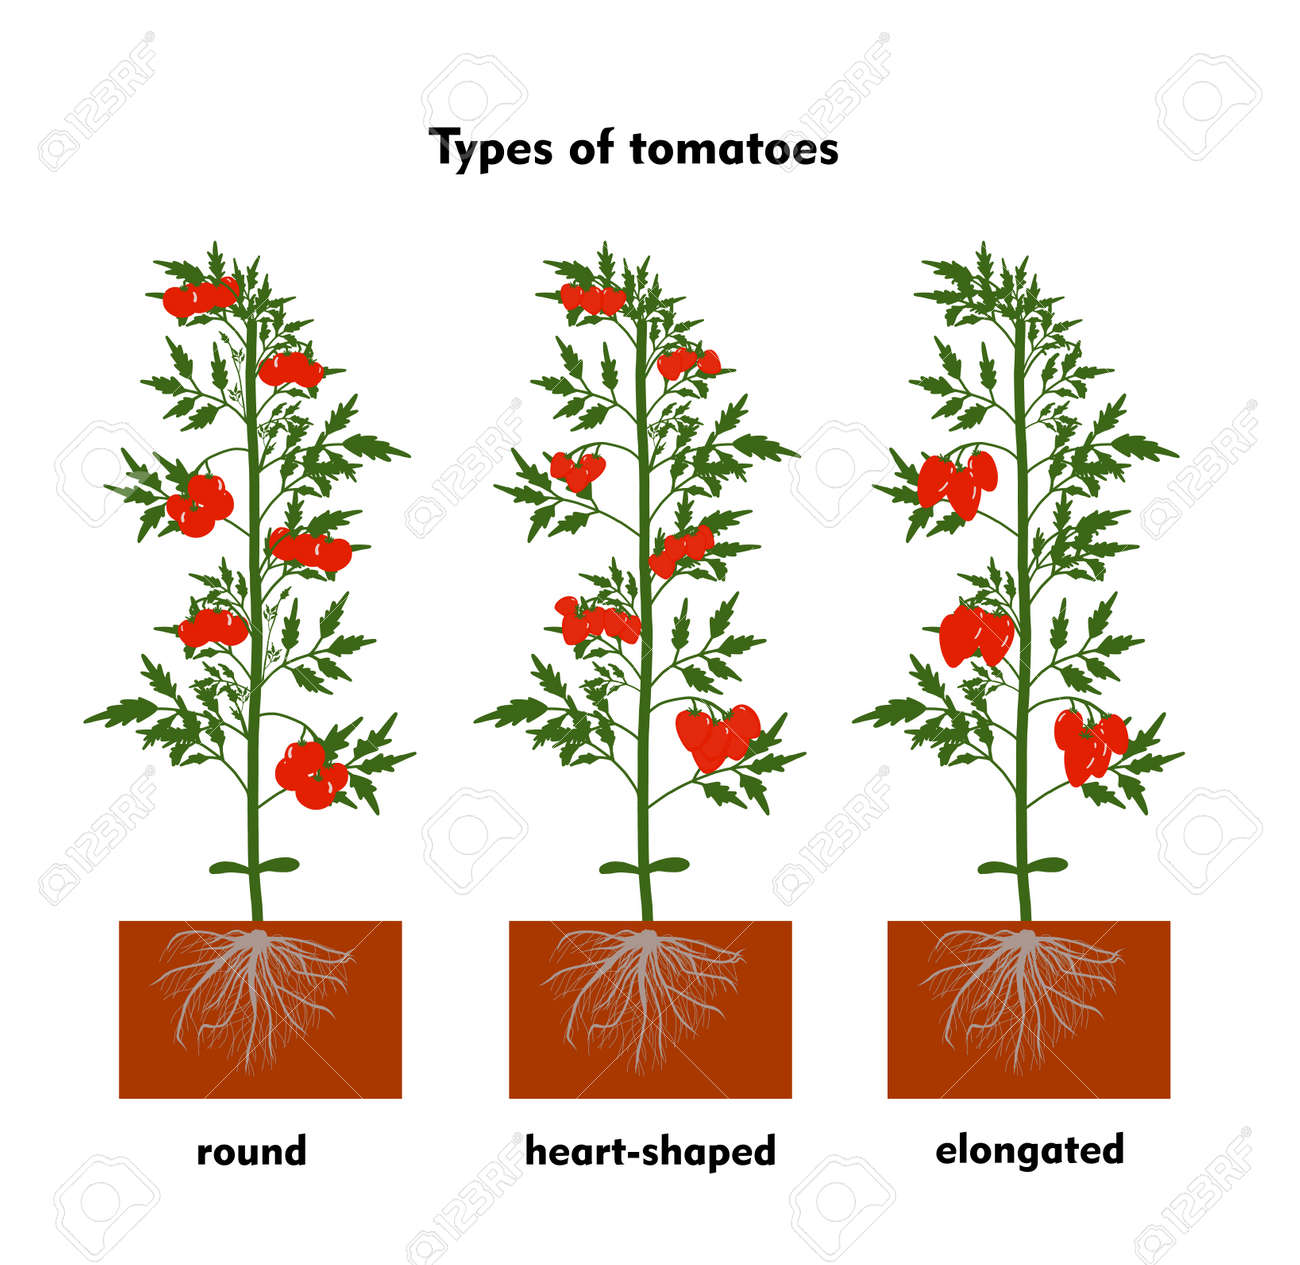 Planting tomatoes in the ground. Growing a tomato. Seedling. Disembarkation in the greenhouse. Vegetable growing technology. Horticulture. Determinant and indeterminate hybrids. - 168914930